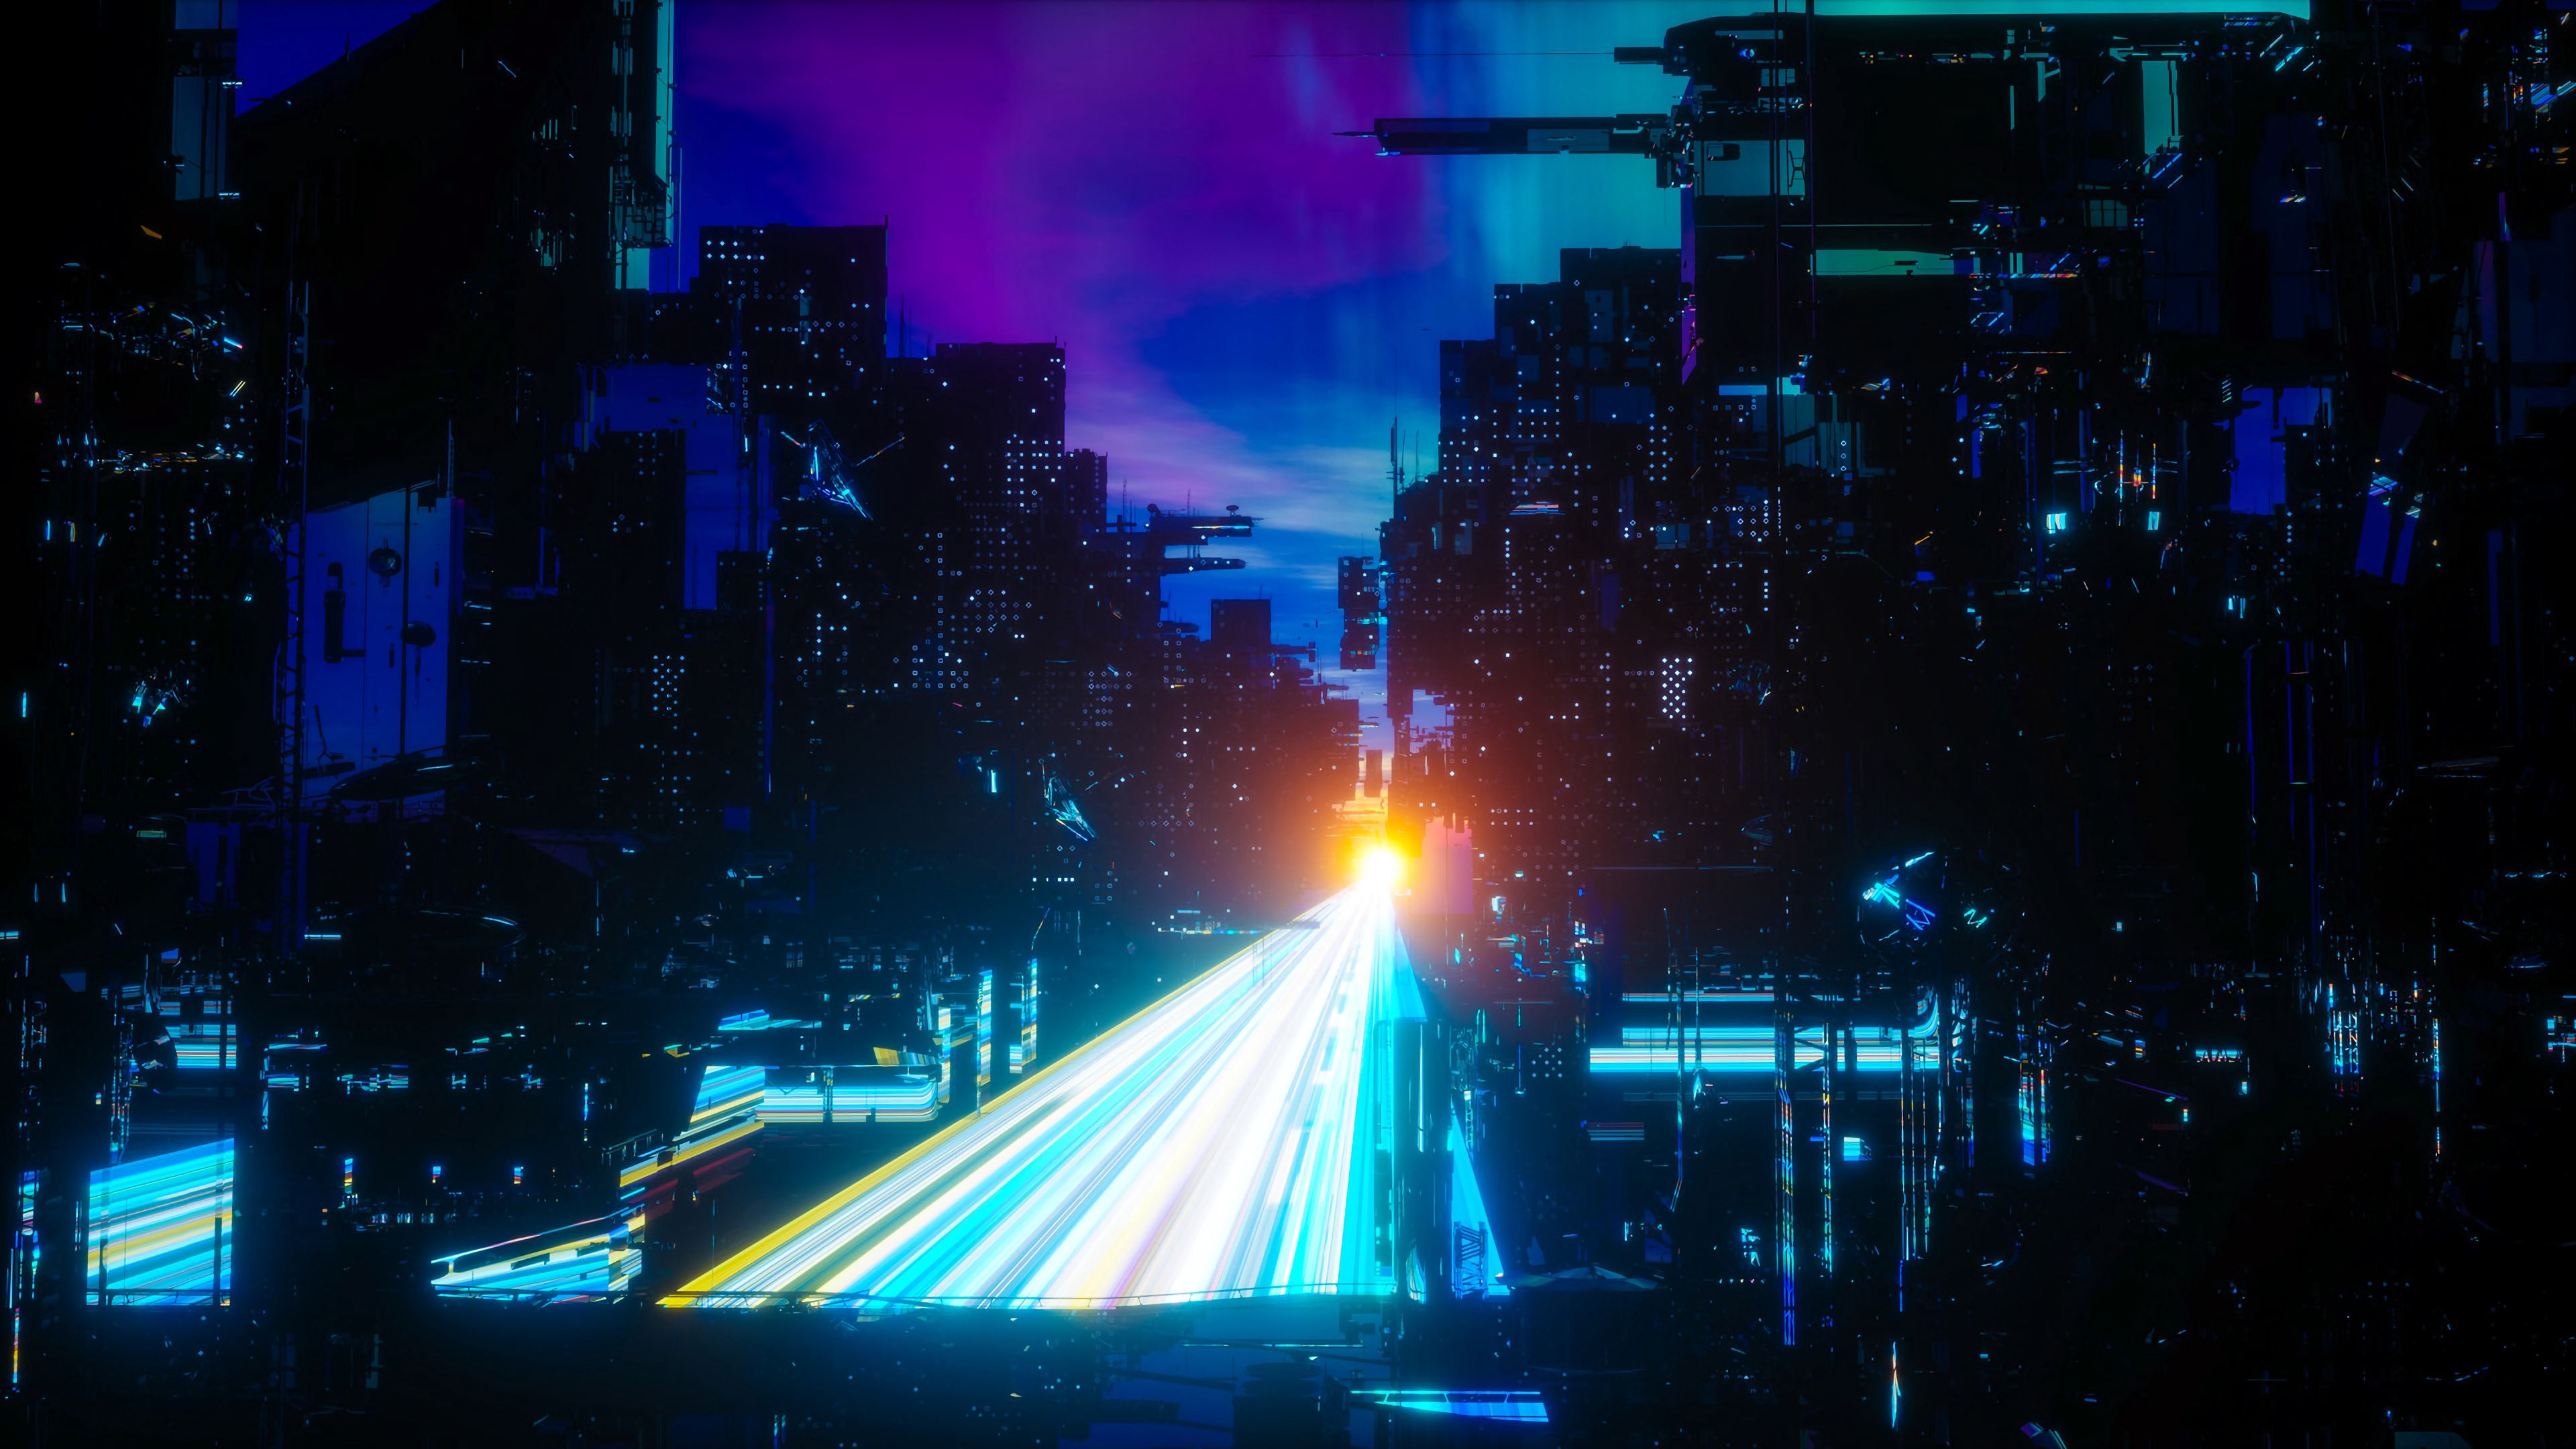 129185 Screensavers and Wallpapers Sci-Fi for phone. Download Art, Night, City, Bridge, Neon, Sci-Fi, Megastructures pictures for free